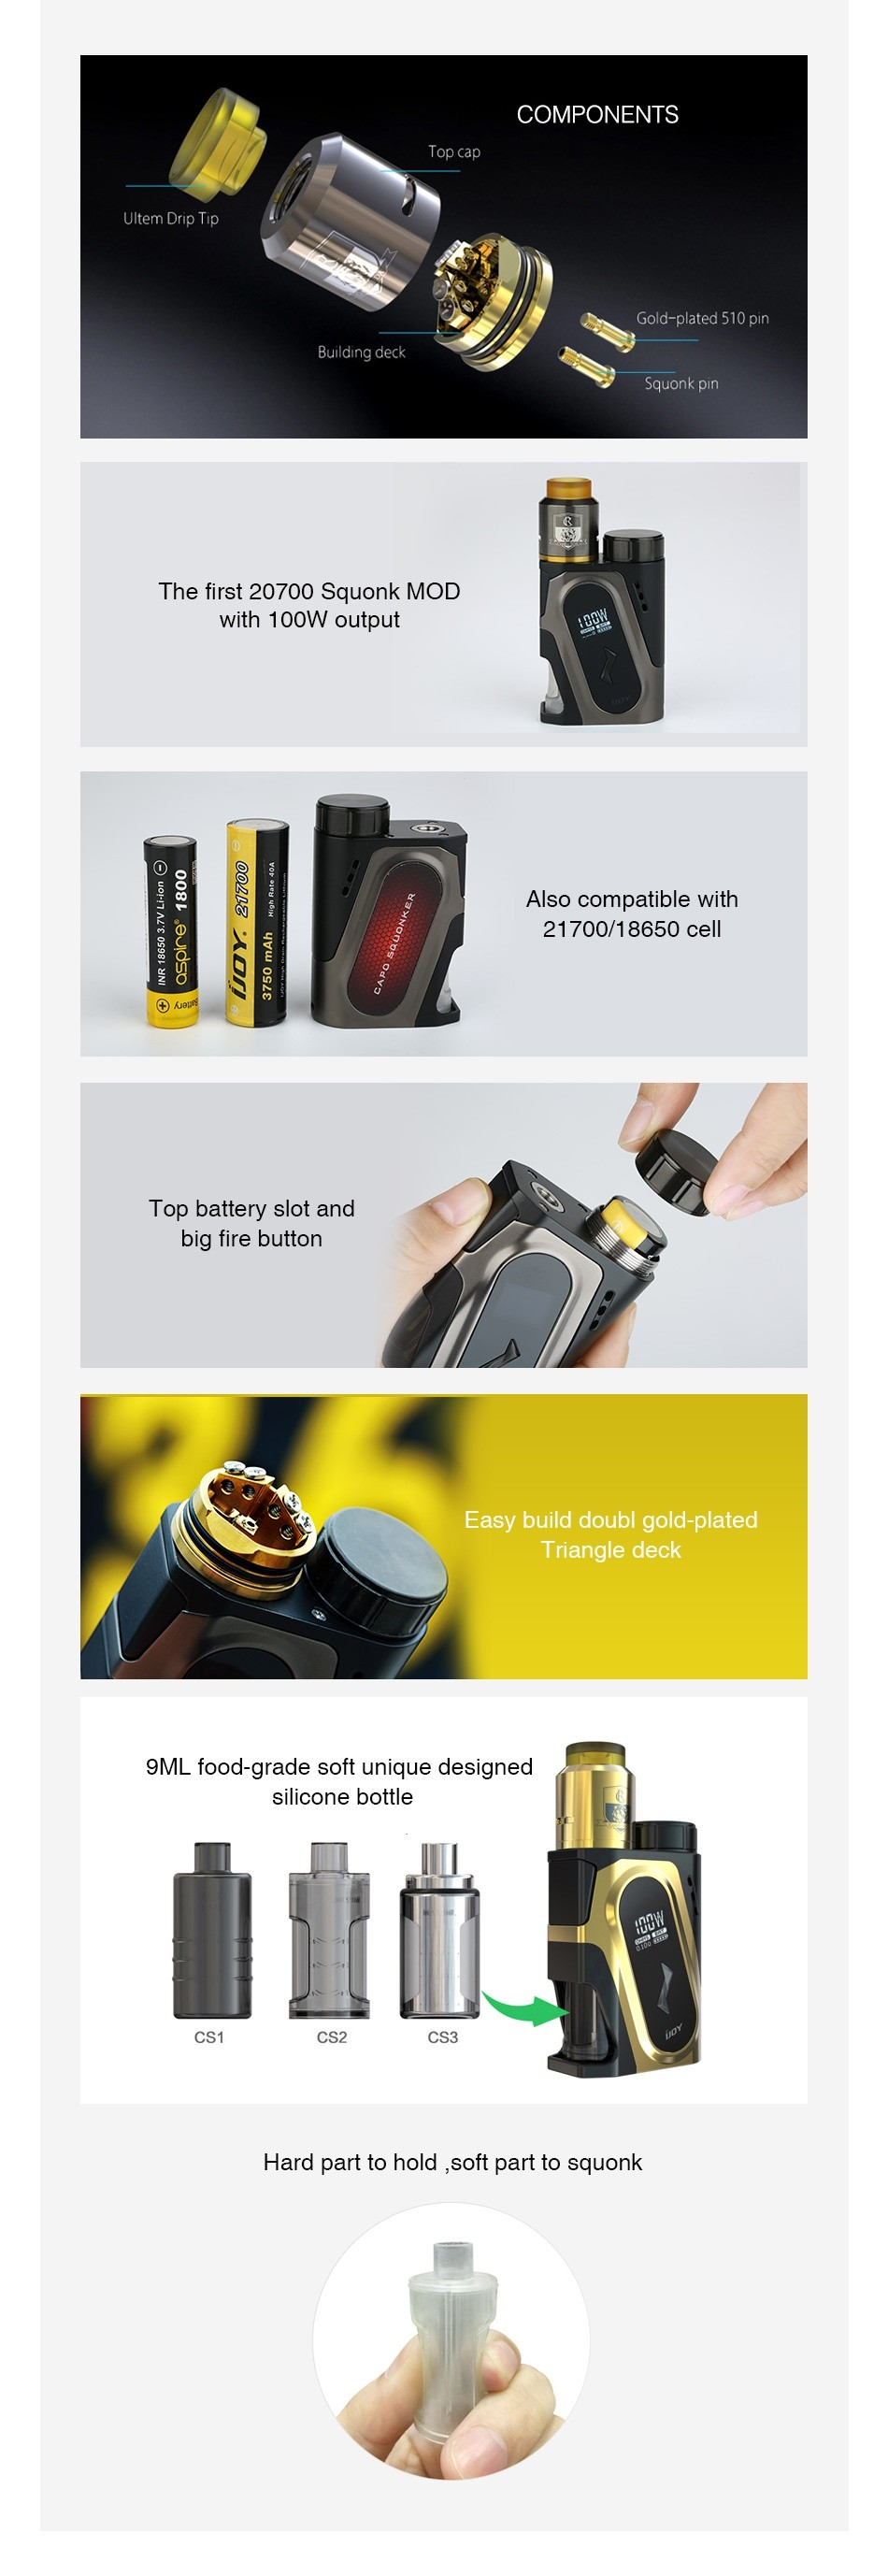 IJOY CAPO 100W 20700 Squonker Kit 3000mAh The first 20700 Squonk MOD with 100W output Q Top battery slot and big fire butto Easy build doubl gold plated Triangle deck 9ML food grade soft unique designed Hard part to hold soft part to squonk